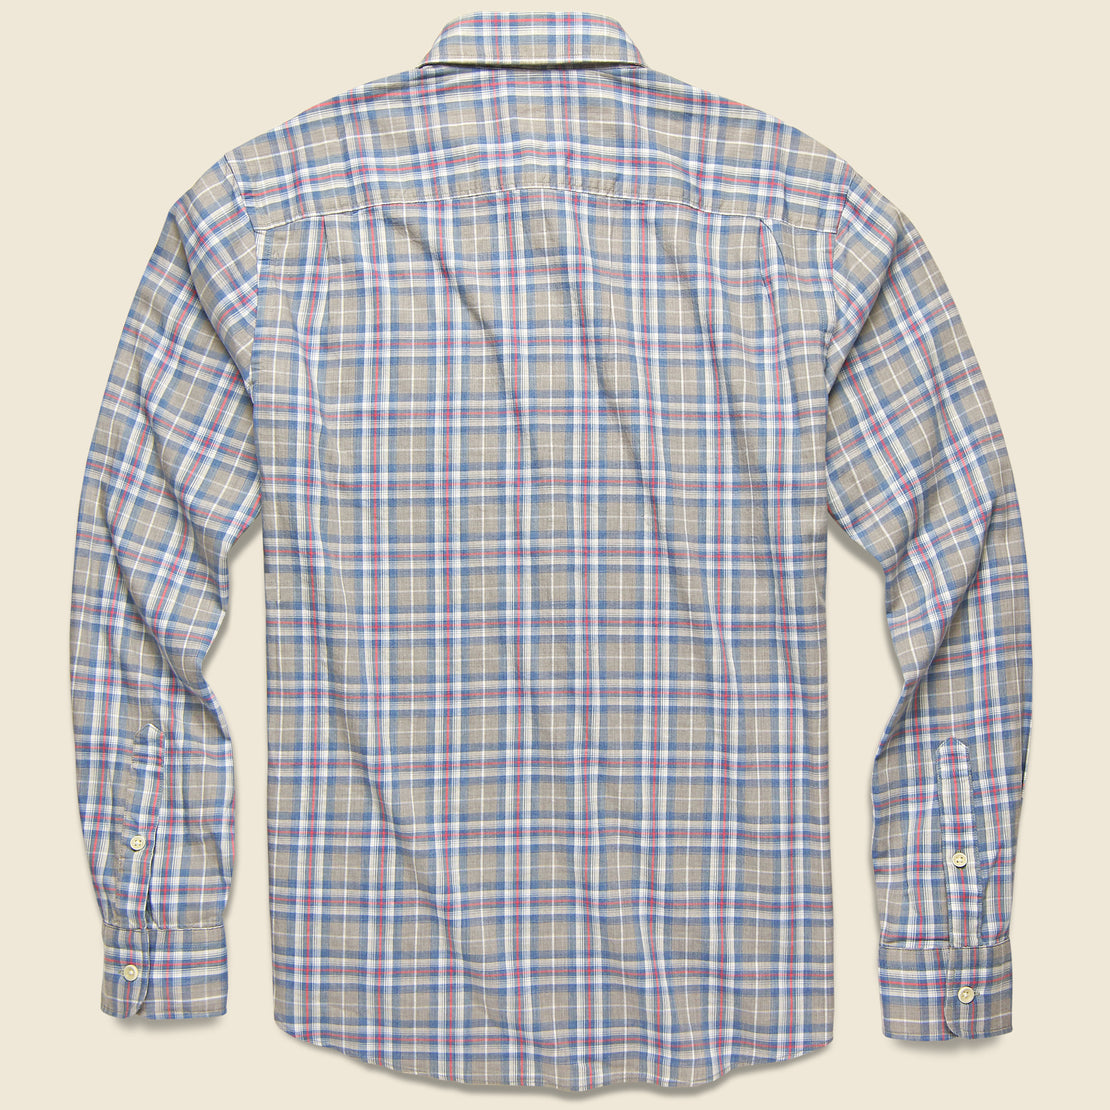 Movement Melange Shirt - Monterey Plaid